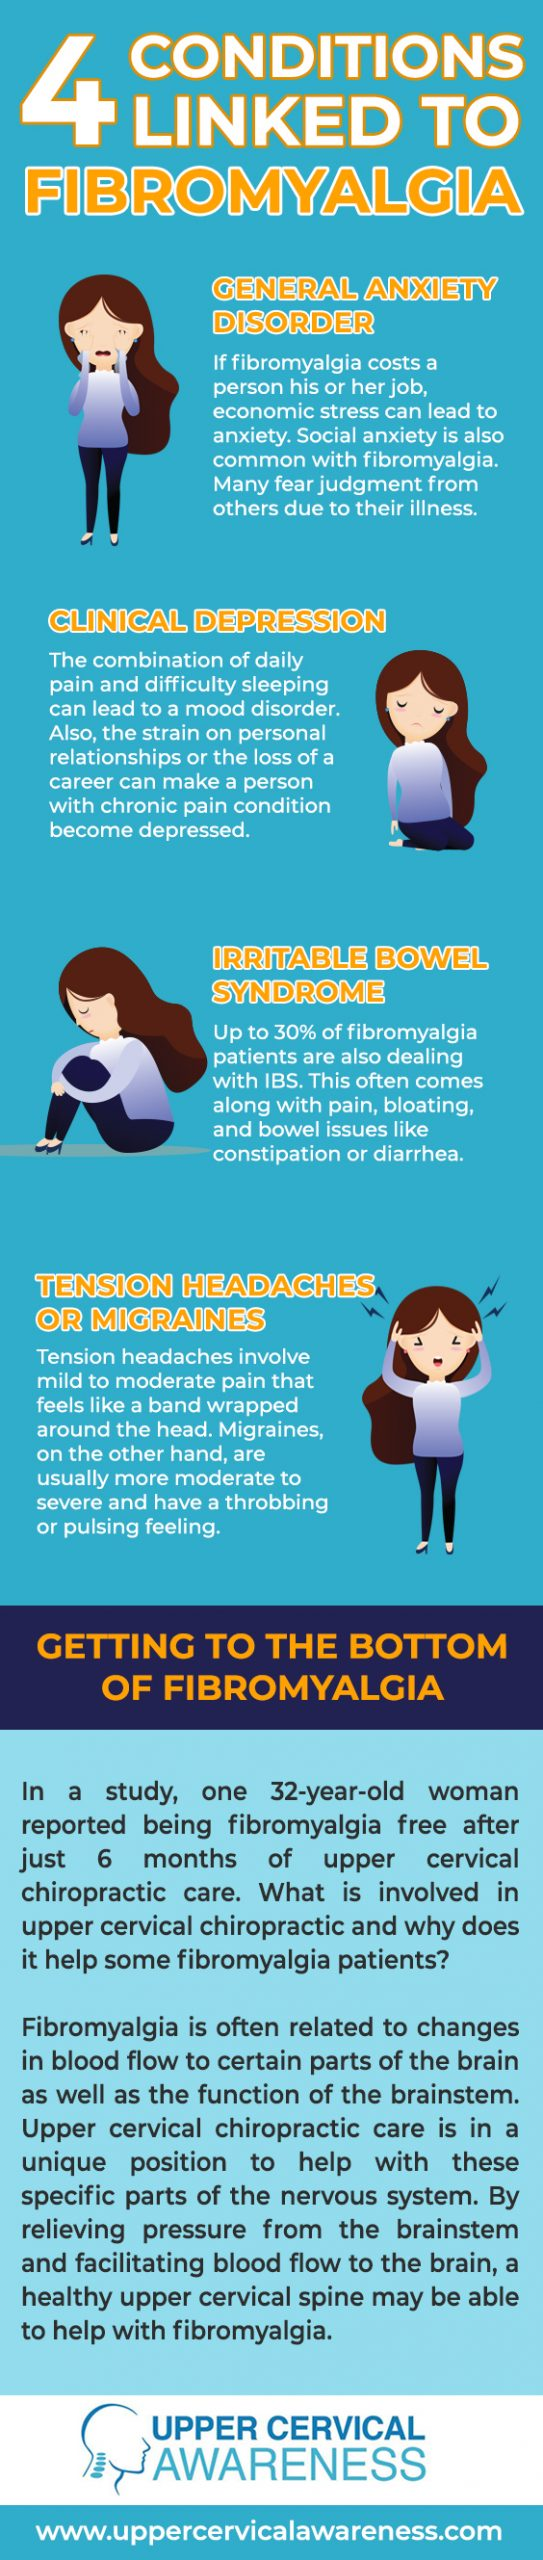 devastating-associated-conditions-linked-fibromyalgia